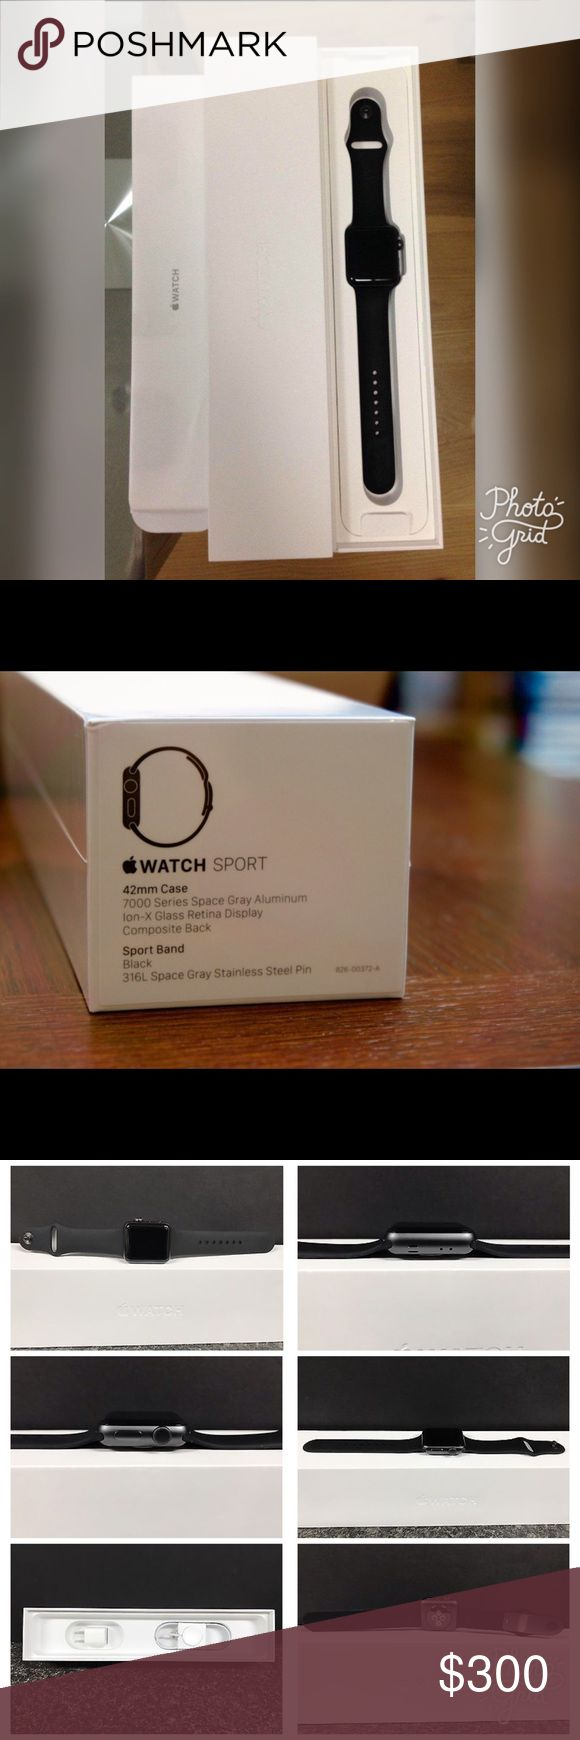 Apple Watch Series 2 Sports Black, 42MM This Watch was purchase April 2017, it is only 3 months old. It is in Excellent condition, and only work a few times. It has absolutely no scratches, scuffs, or signs of wear. I still have the original receipt. The watch comes with everything that is in the photo including an extra black band. 🚫No Transactions off of Poshmark, please do not ask, someone has already tried to scam me, I will only go through Poshmark for my safety and yours. Apple…